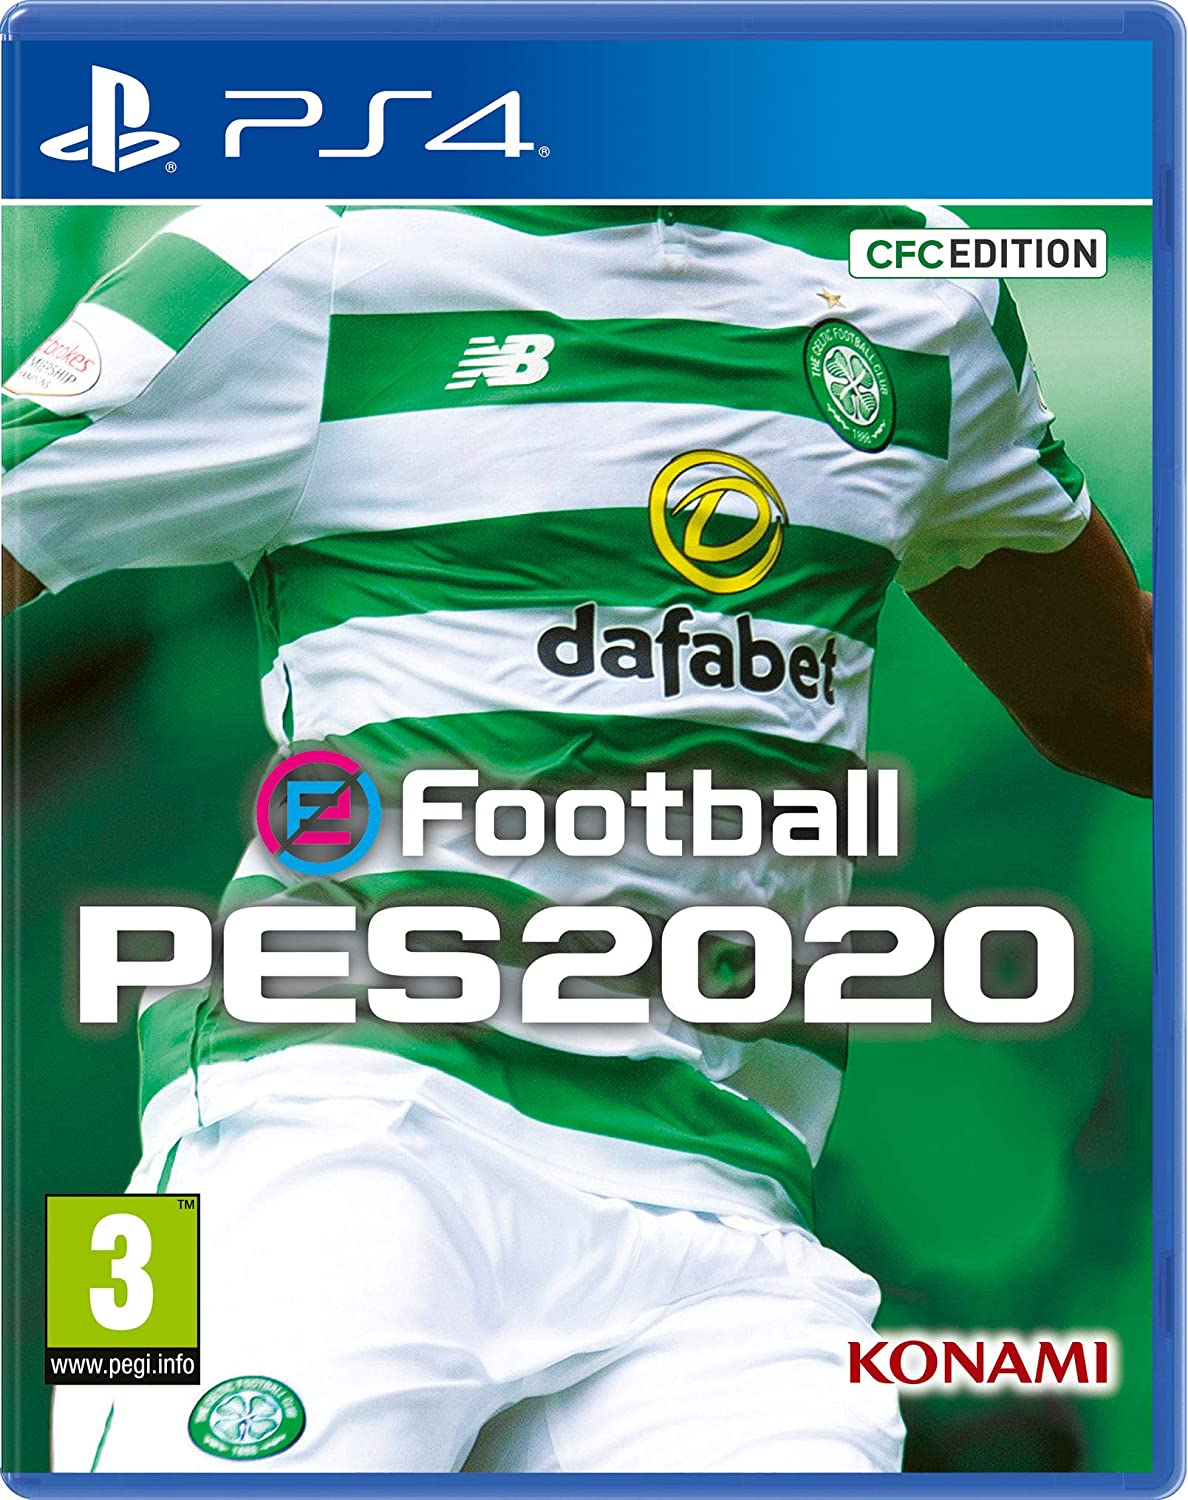 Efootball PES 2020 Celtic FC Edition - PlayStation 4 [Importación ...